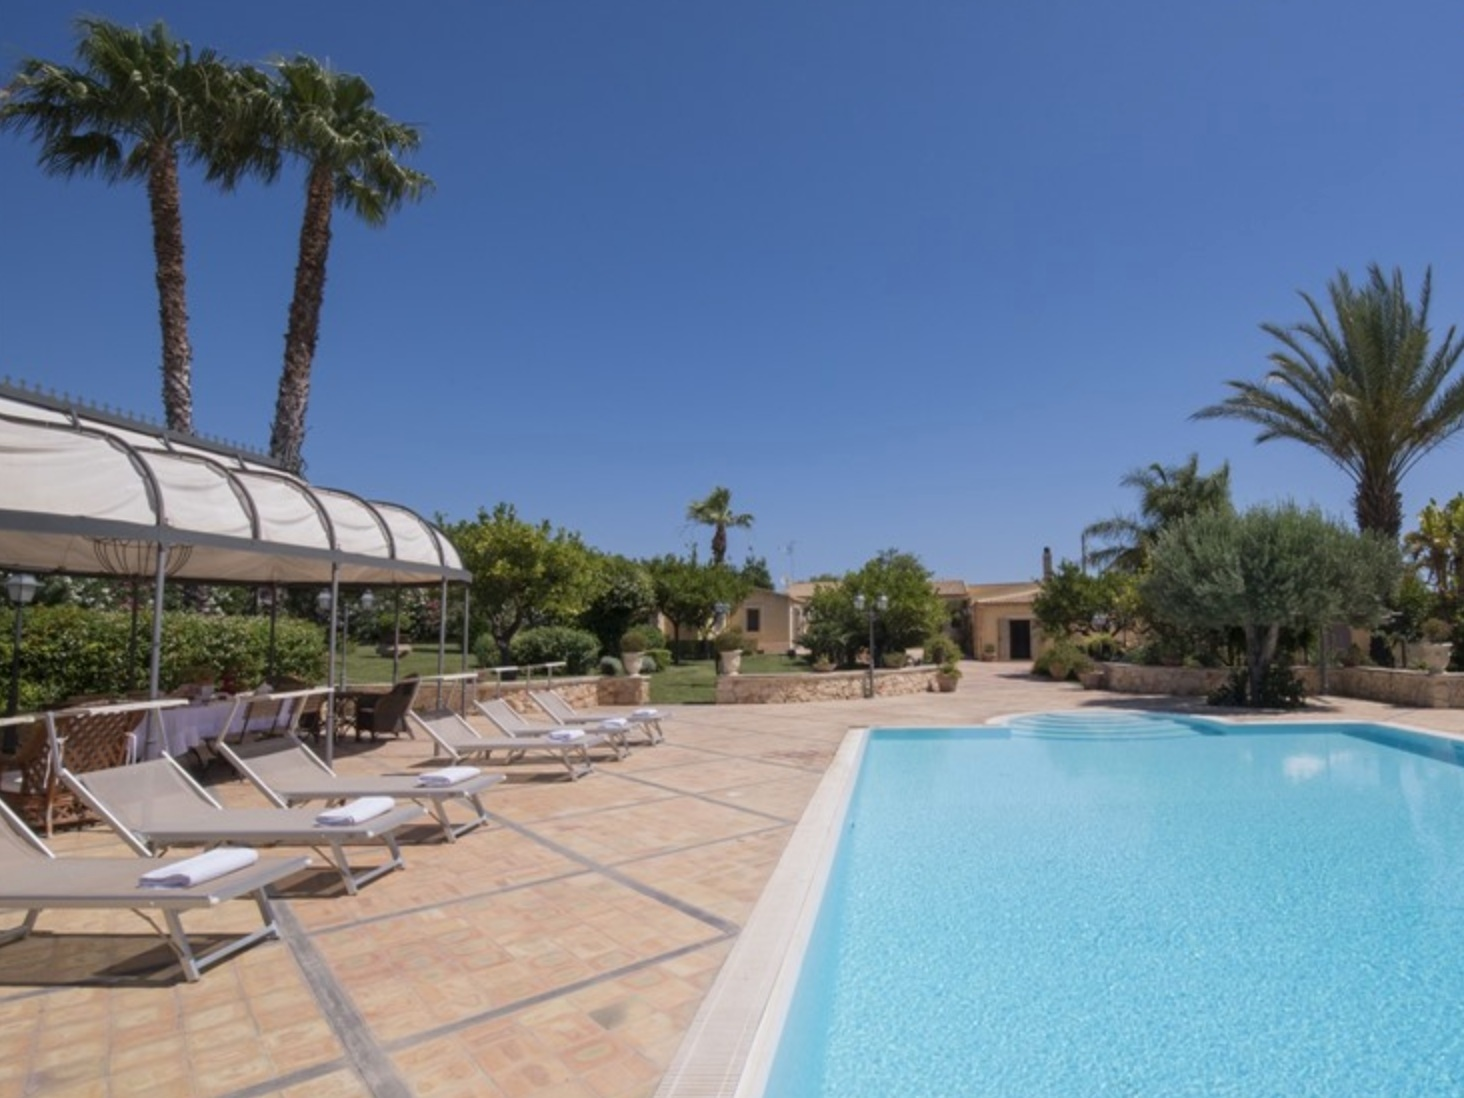 VILLA IN SIRACUSA - CAPROSA - 3 BEDROOMS - 3 BATHWEEKLY PRICE FROM €1,445